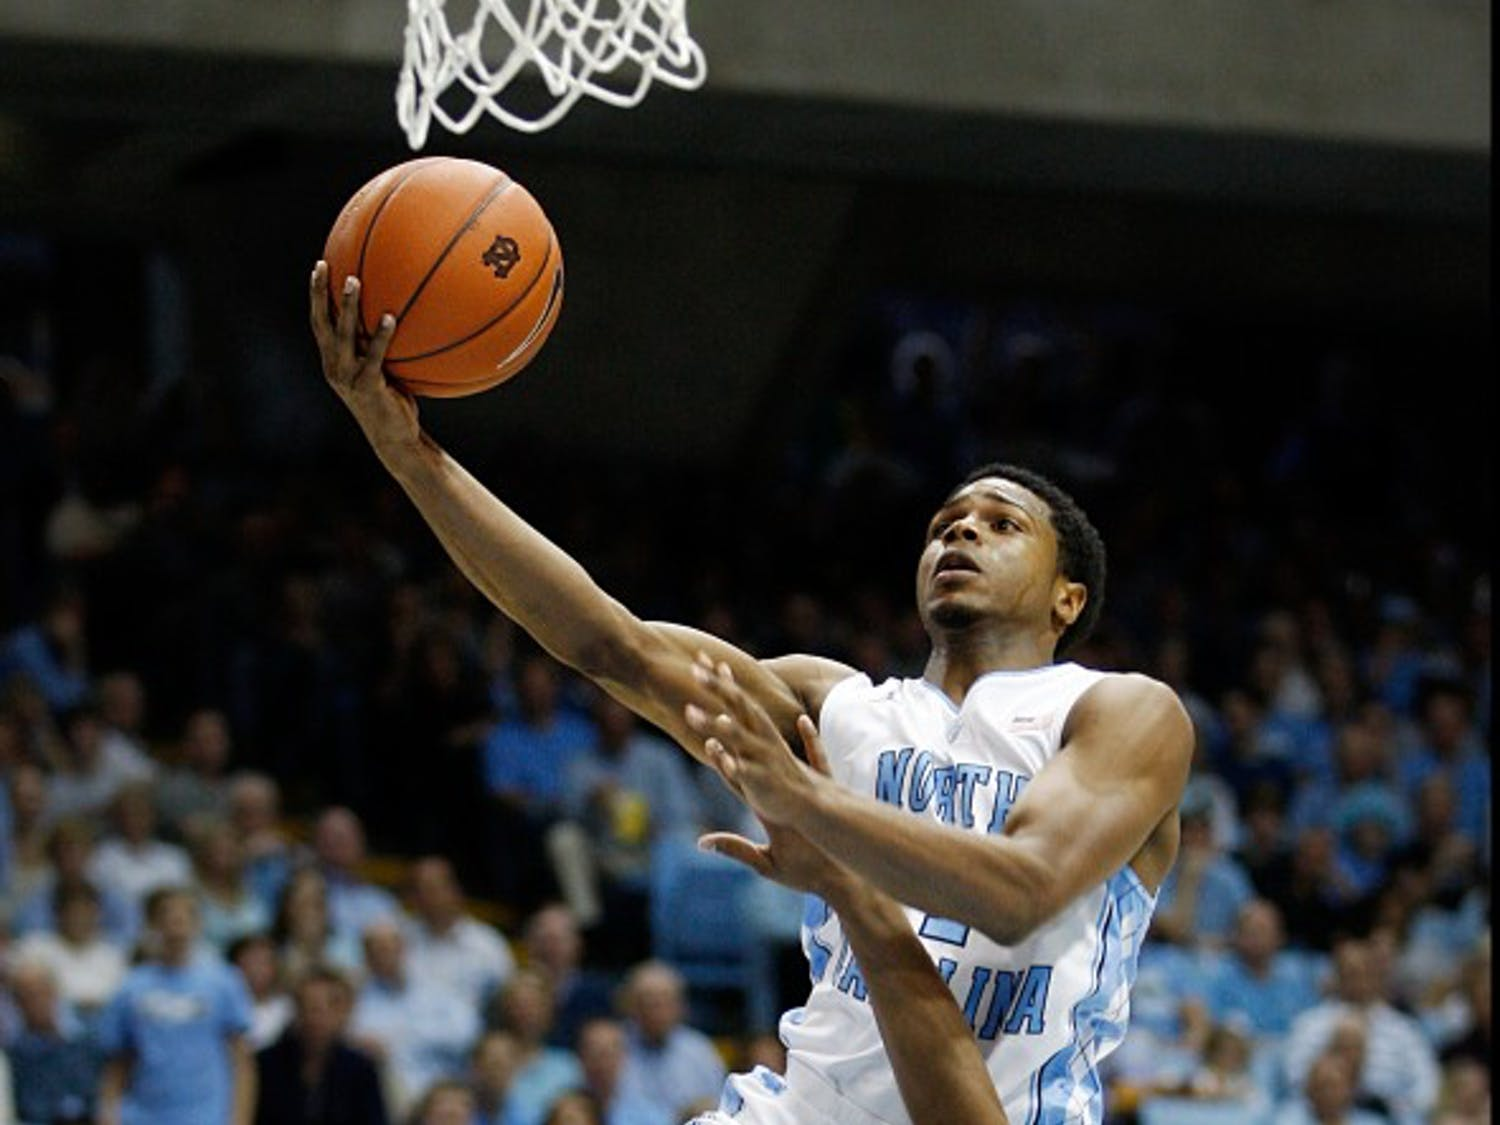 UNC guard Dexter Strickland drives to the hoop during the game against Boston College on Saturday. The Tar Heels defeated Boston College 83-60.